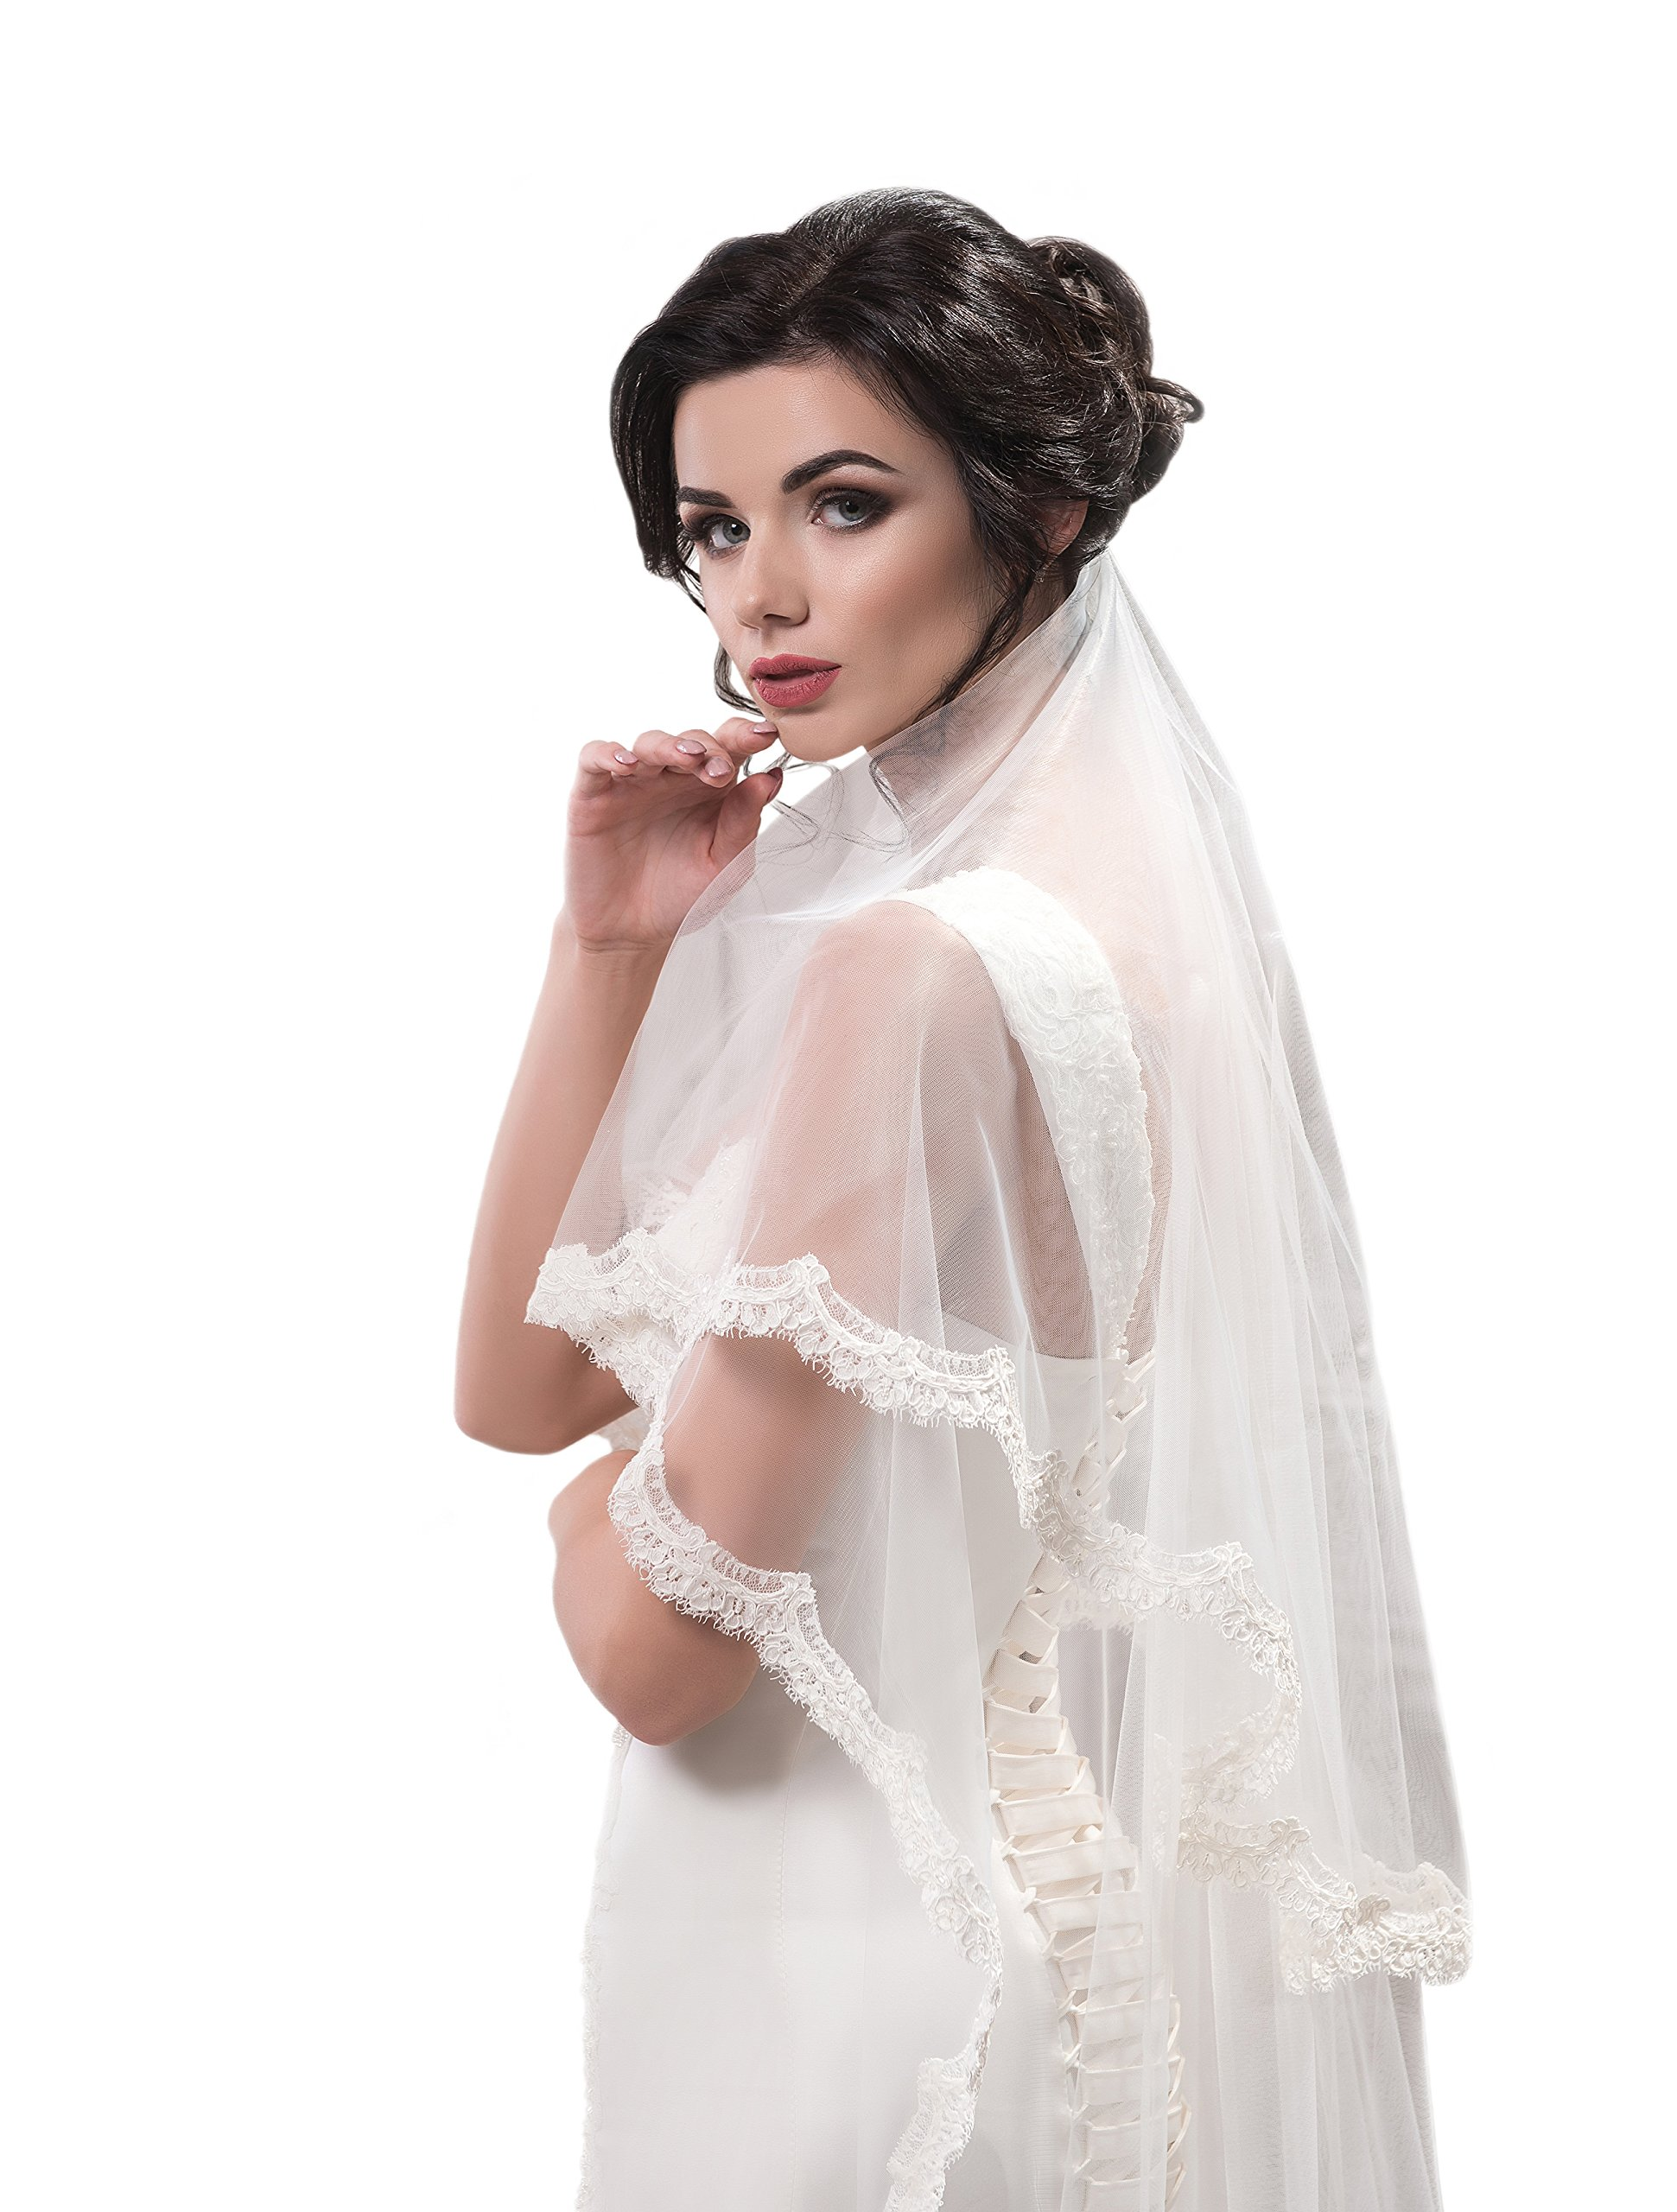 "Bridal Veil Amanda from NYC Bride collection (short 30"", ivory)"